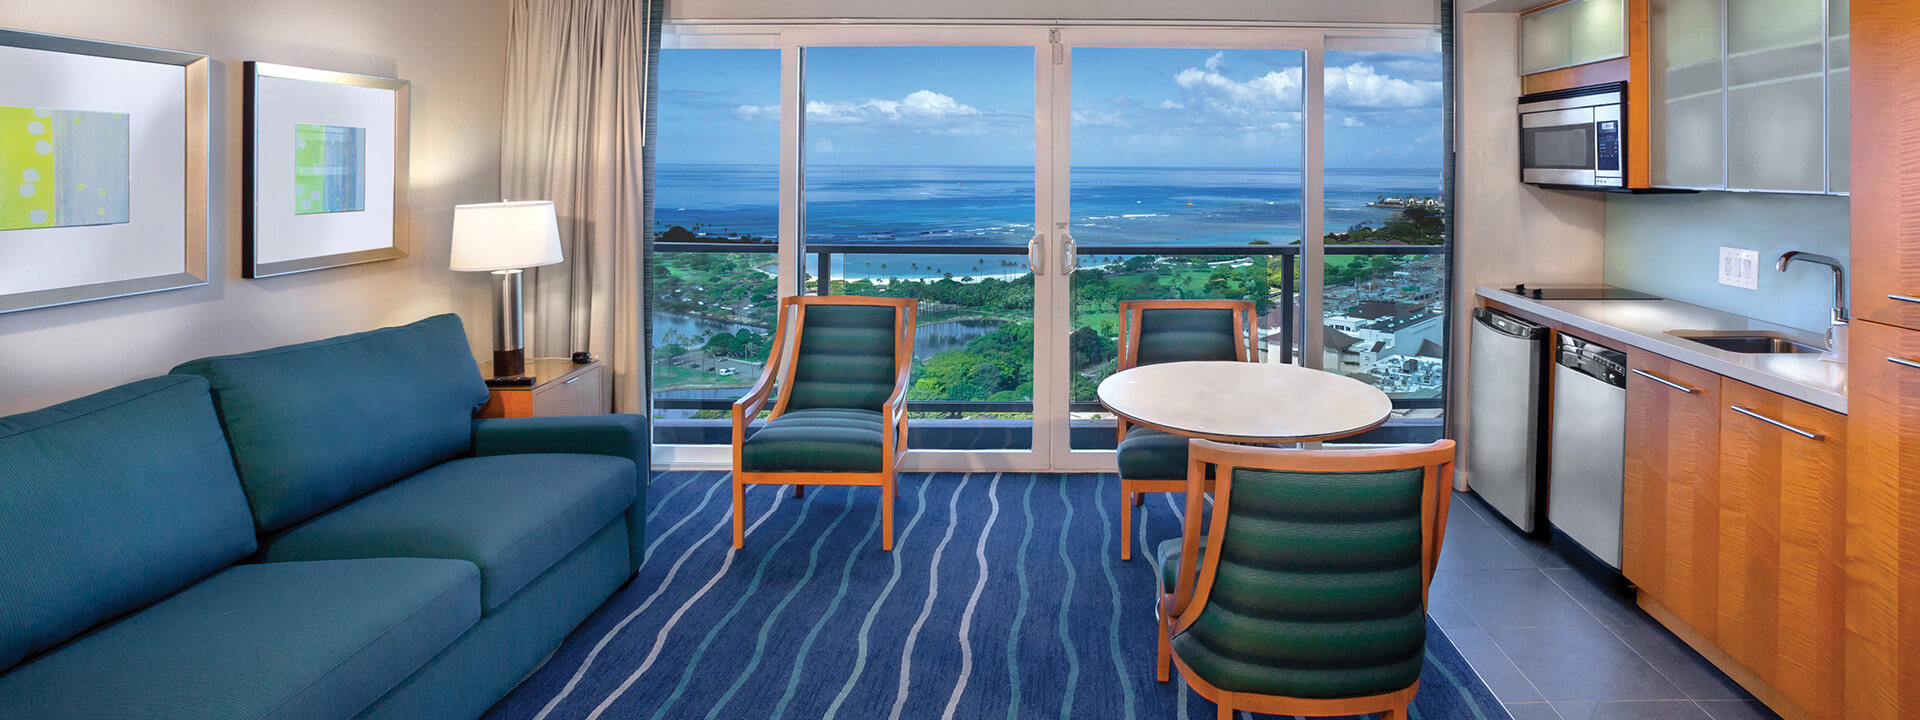 Rooms & Suites - Ala Moana Hotel, Honolulu